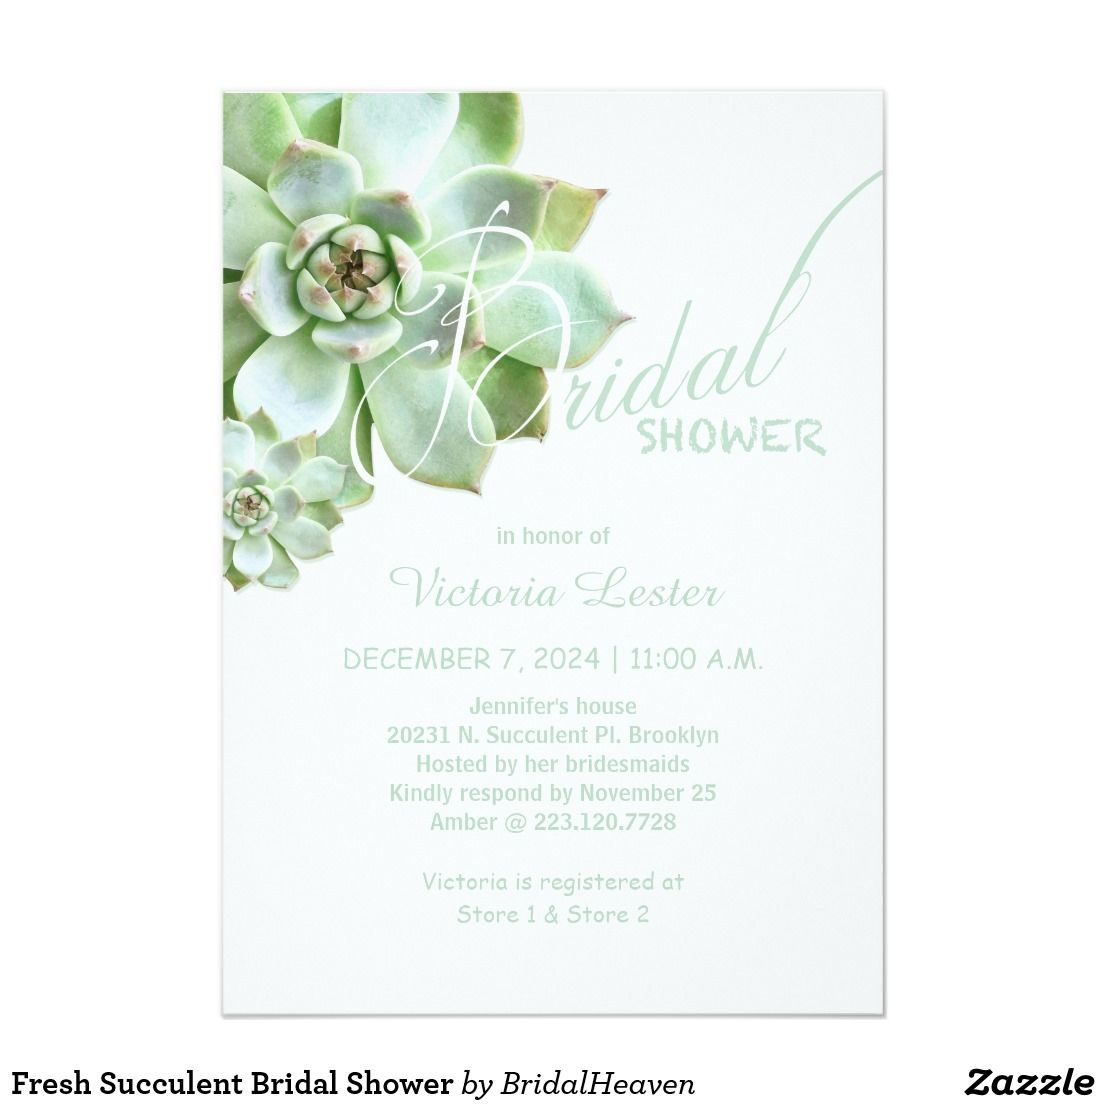 Fresh Succulent Bridal Shower Card | Bridal shower cards, Bridal ...